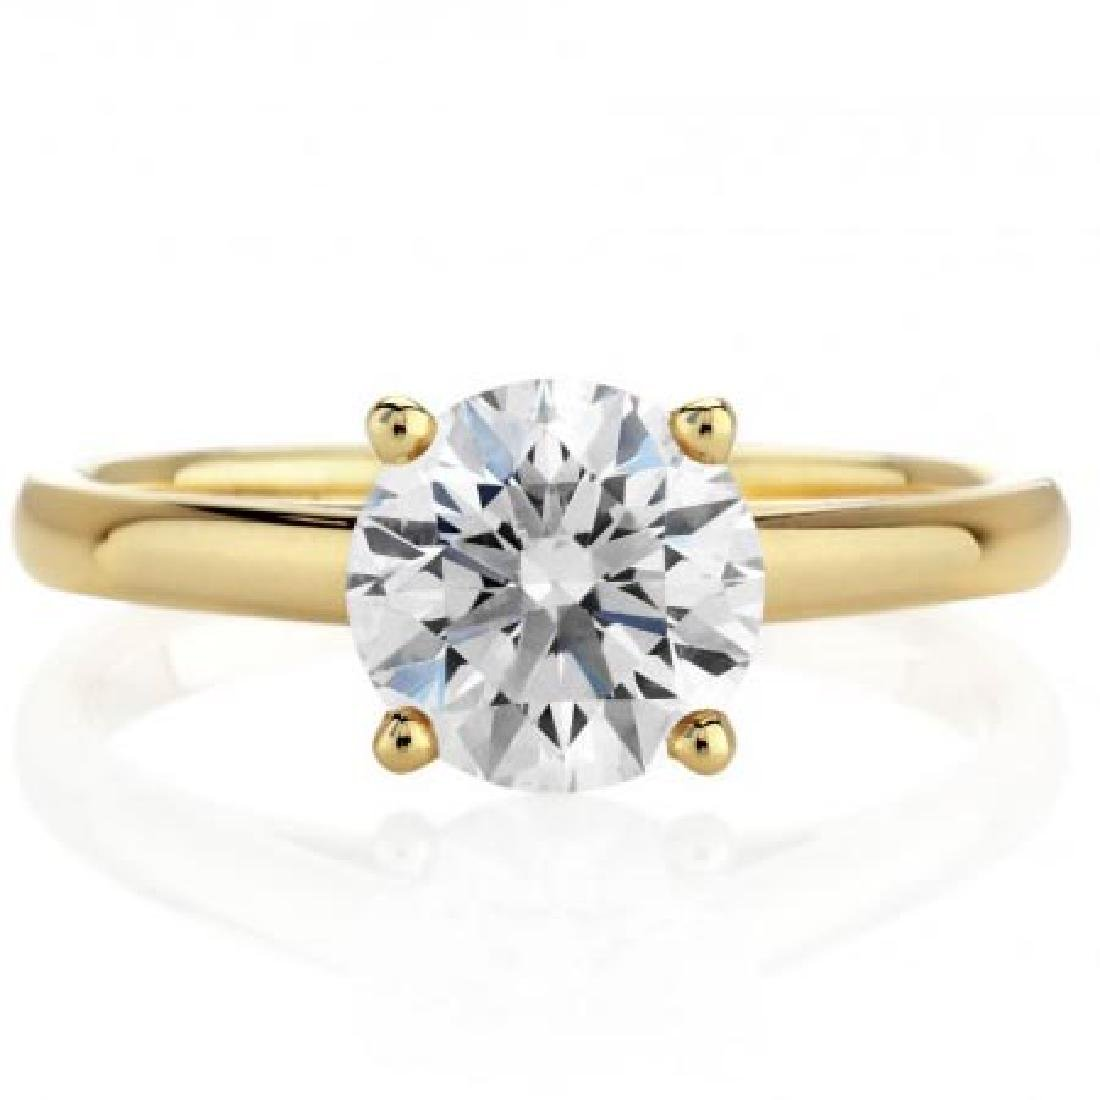 CERTIFIED 1 CTW ROUND I/SI2 SOLITAIRE RING IN 14K YELLO